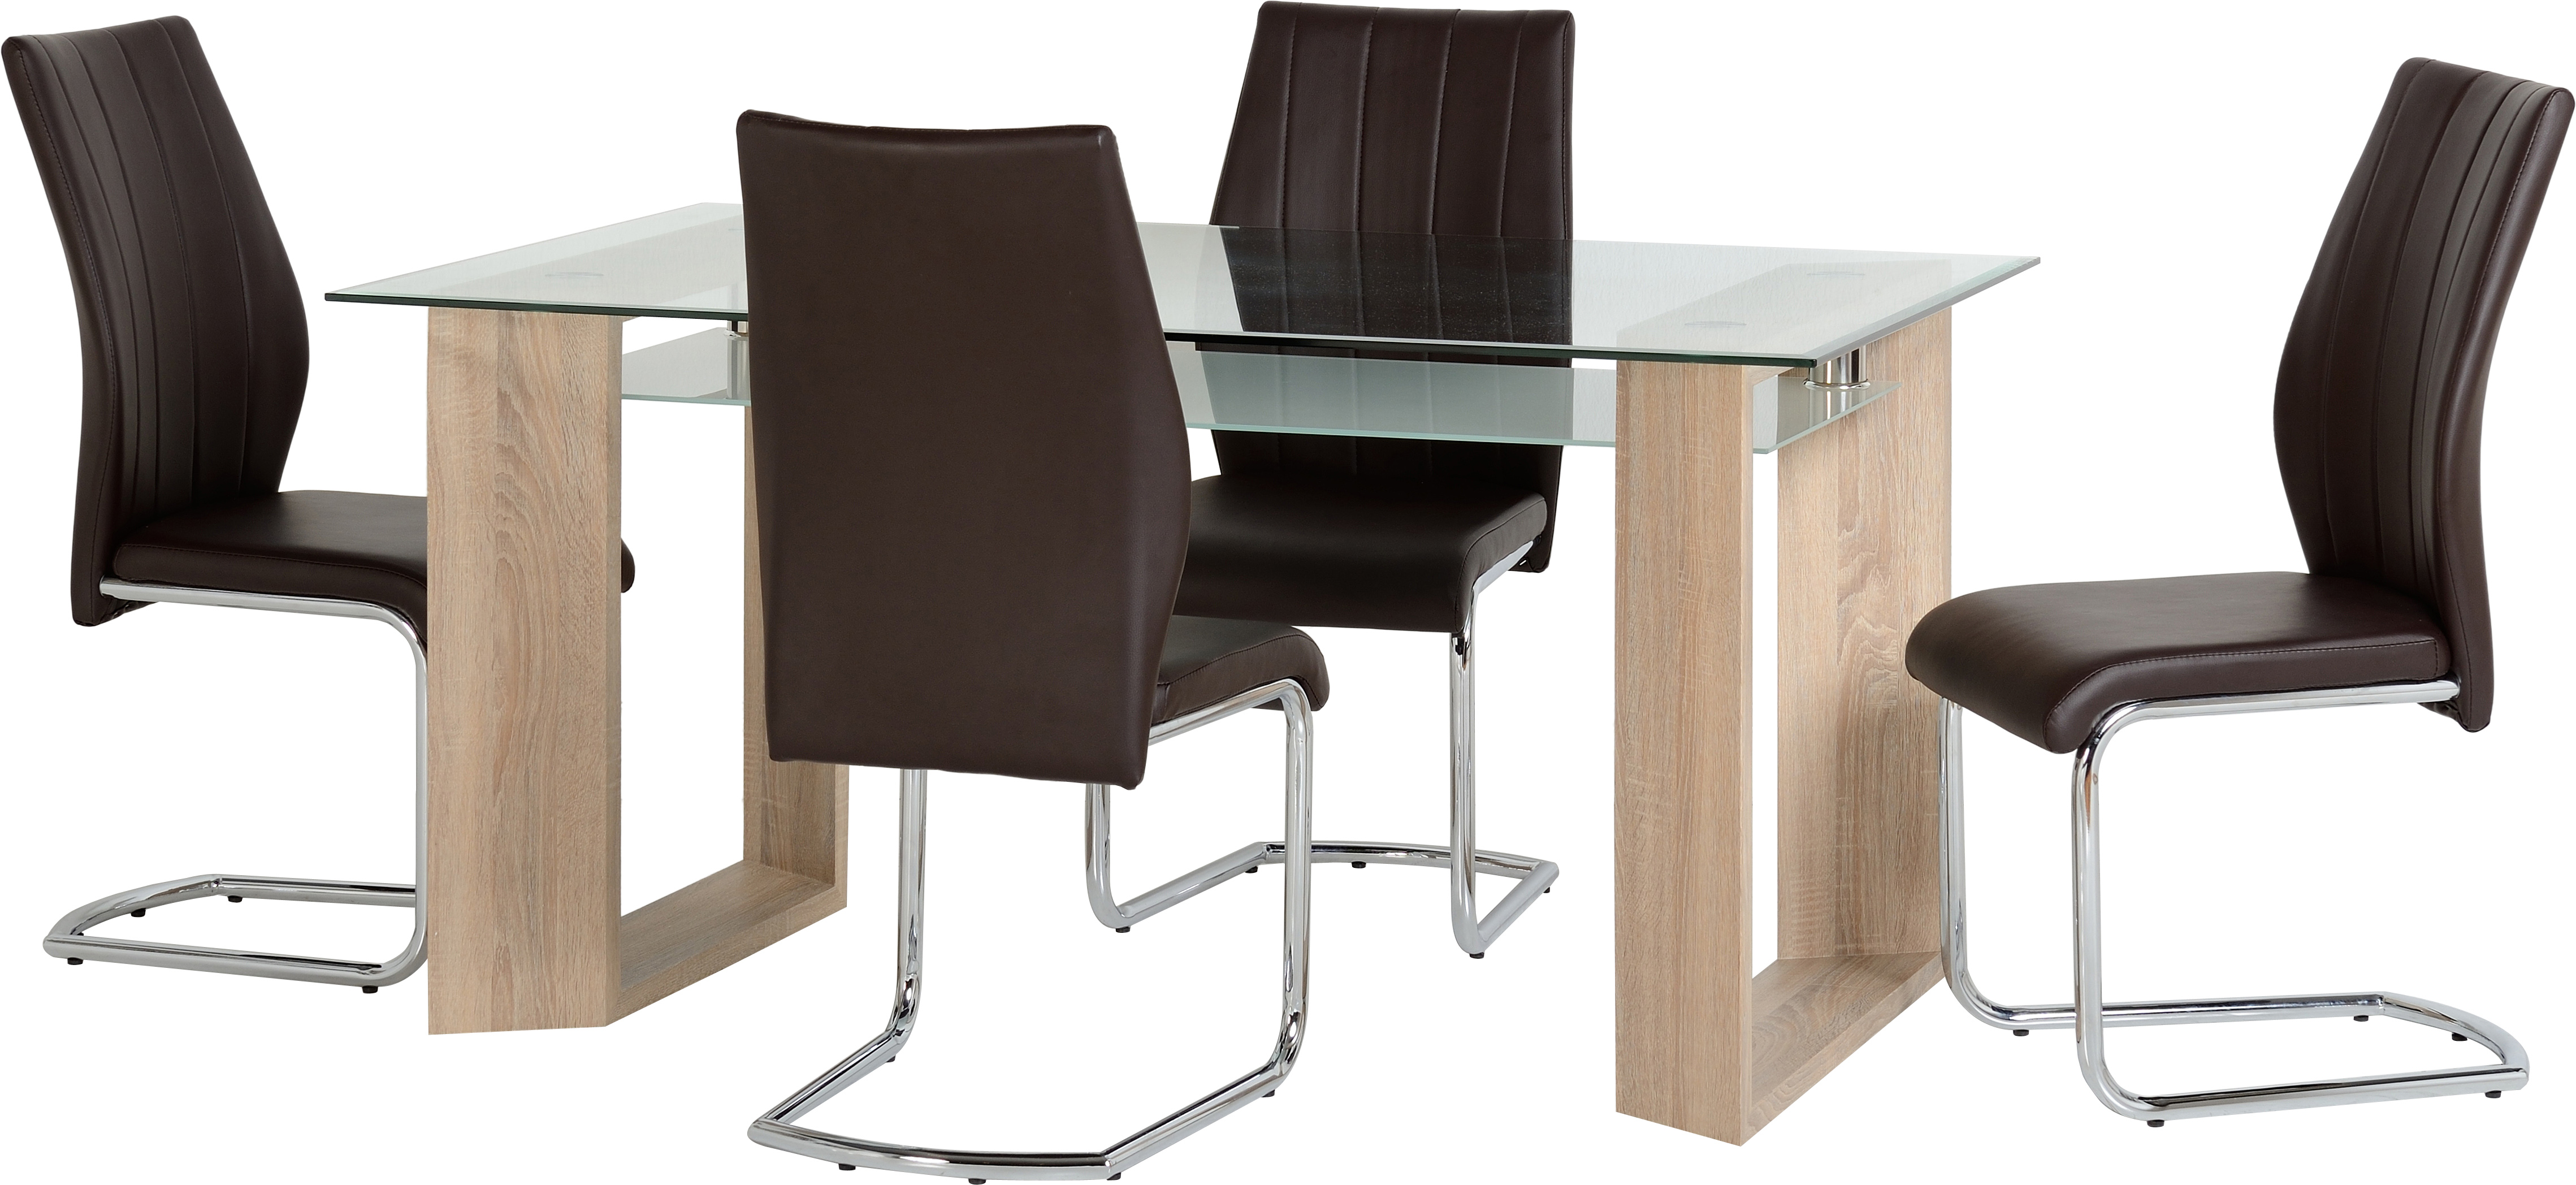 Milan 4 Seater Dining Set in Clear Glass & Frosted Glass